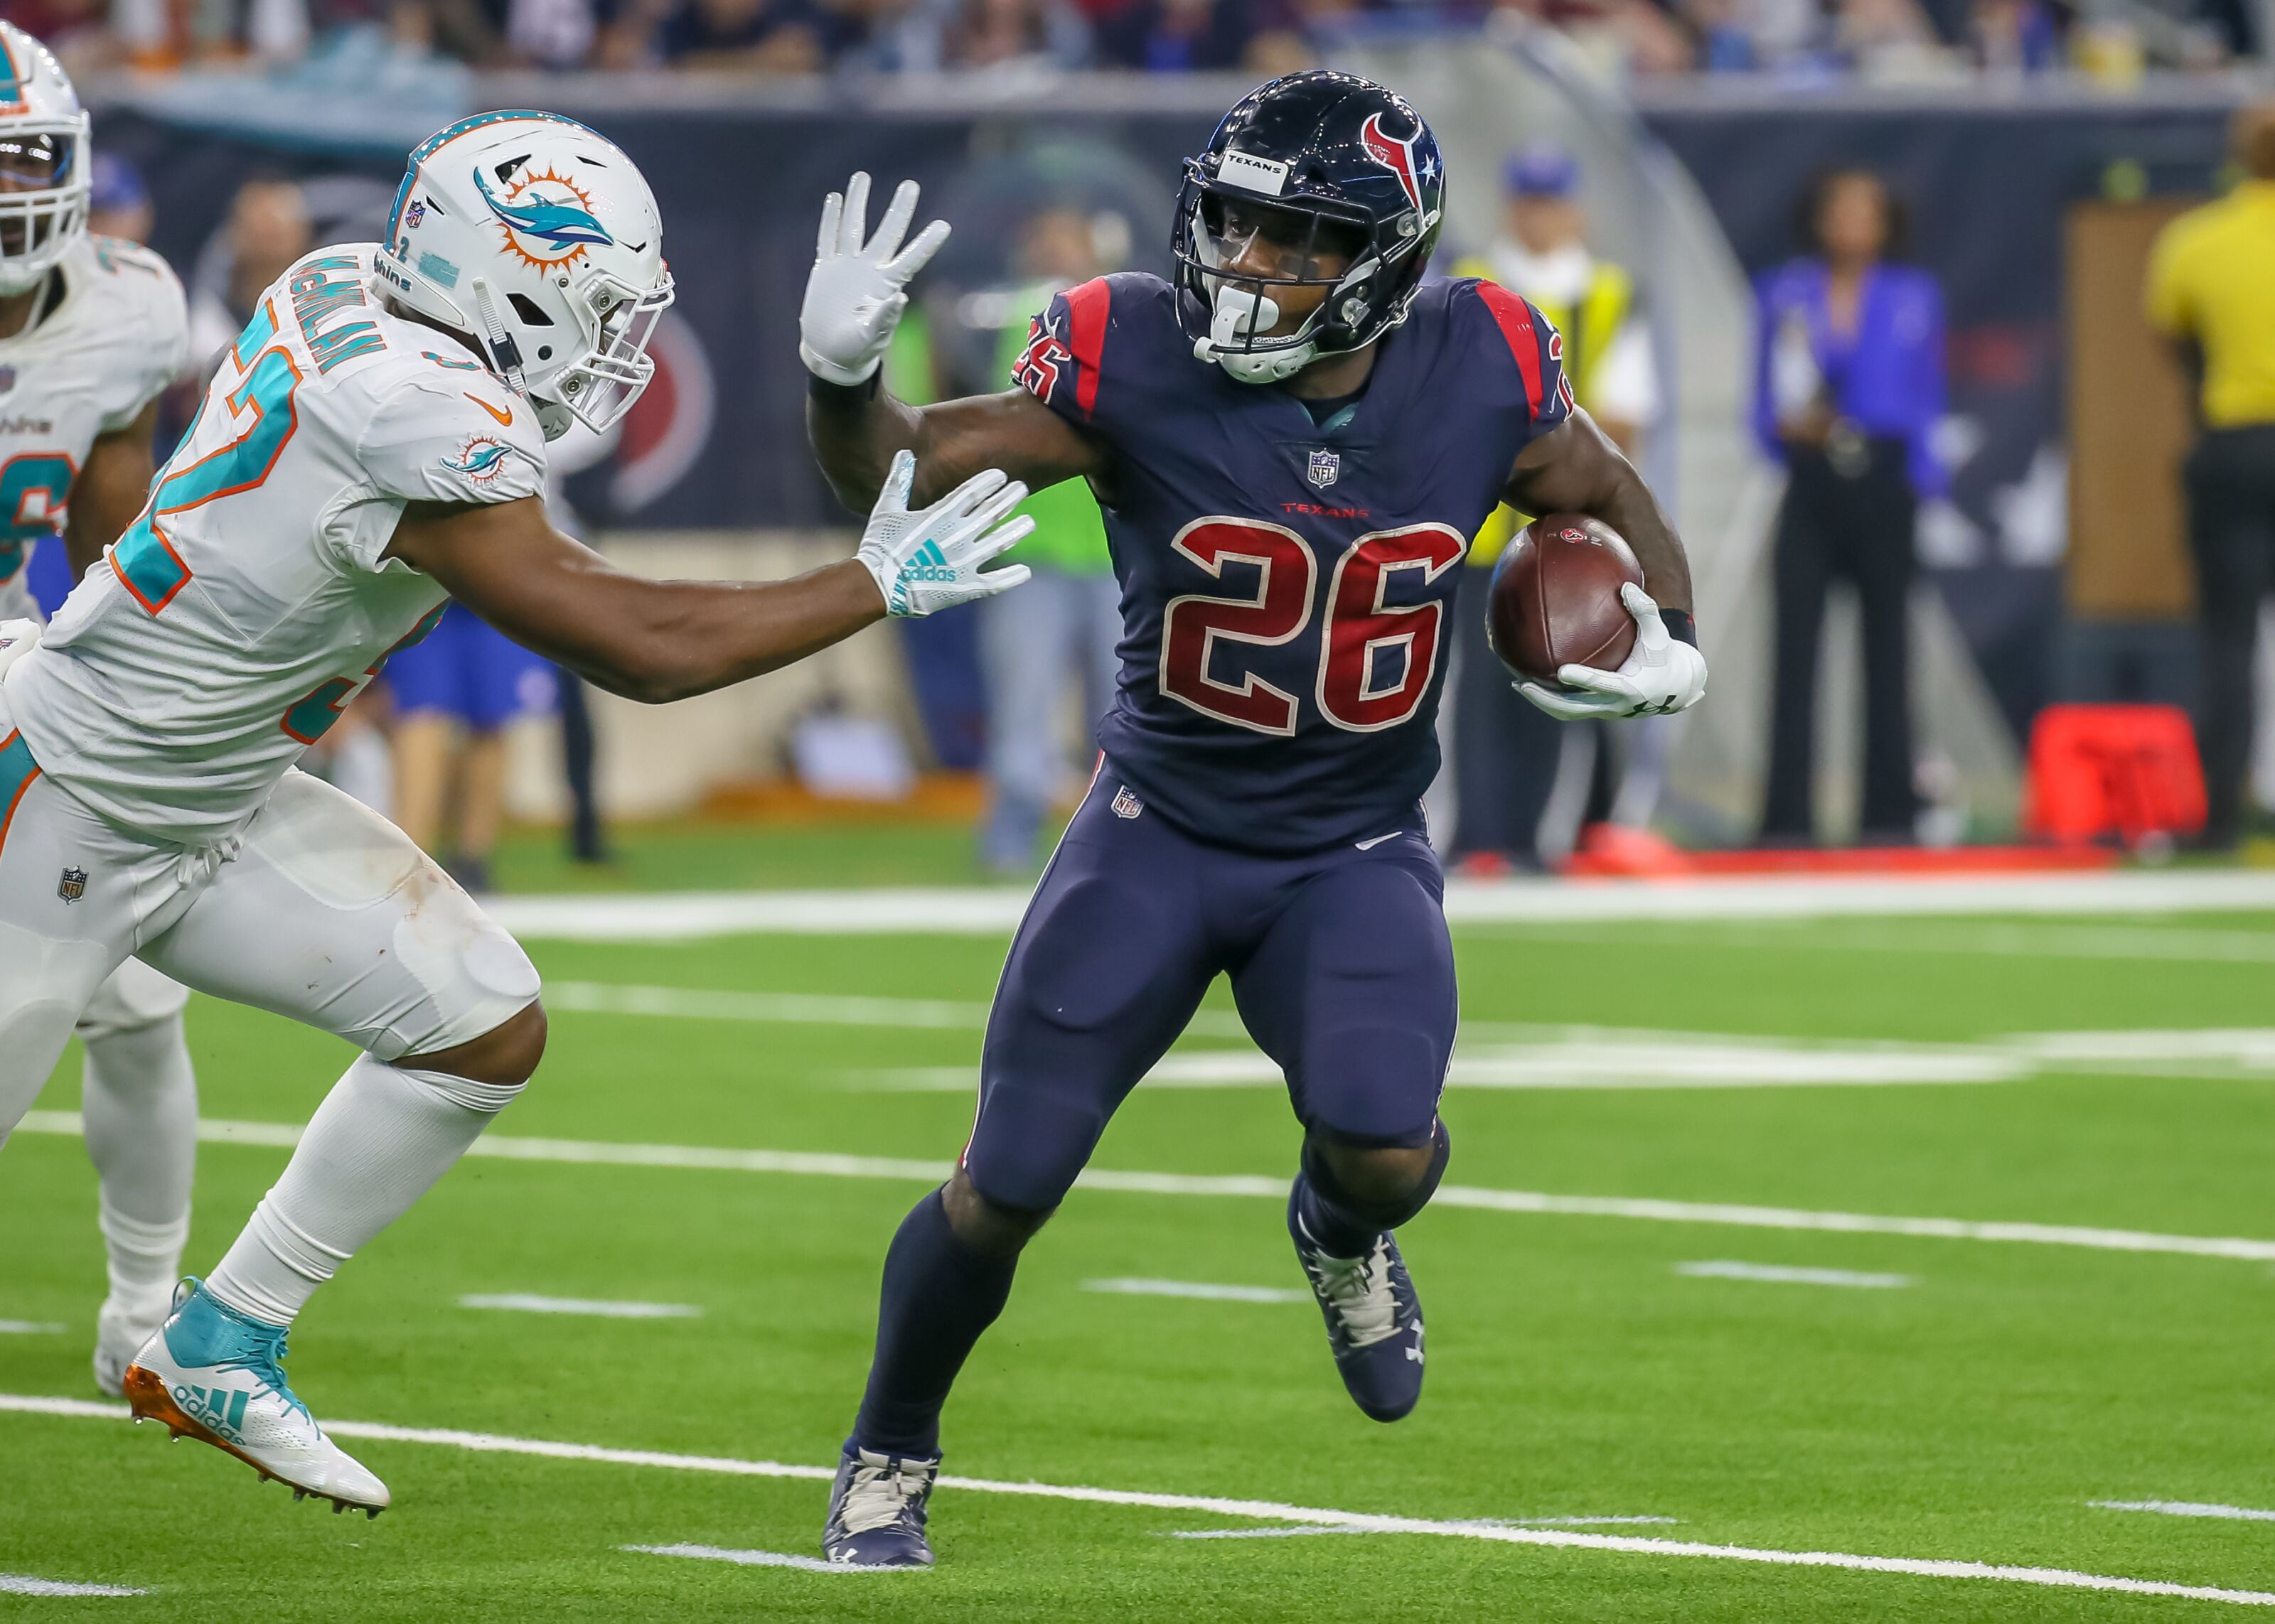 Who can replace Lamar Miller on your fantasy team?